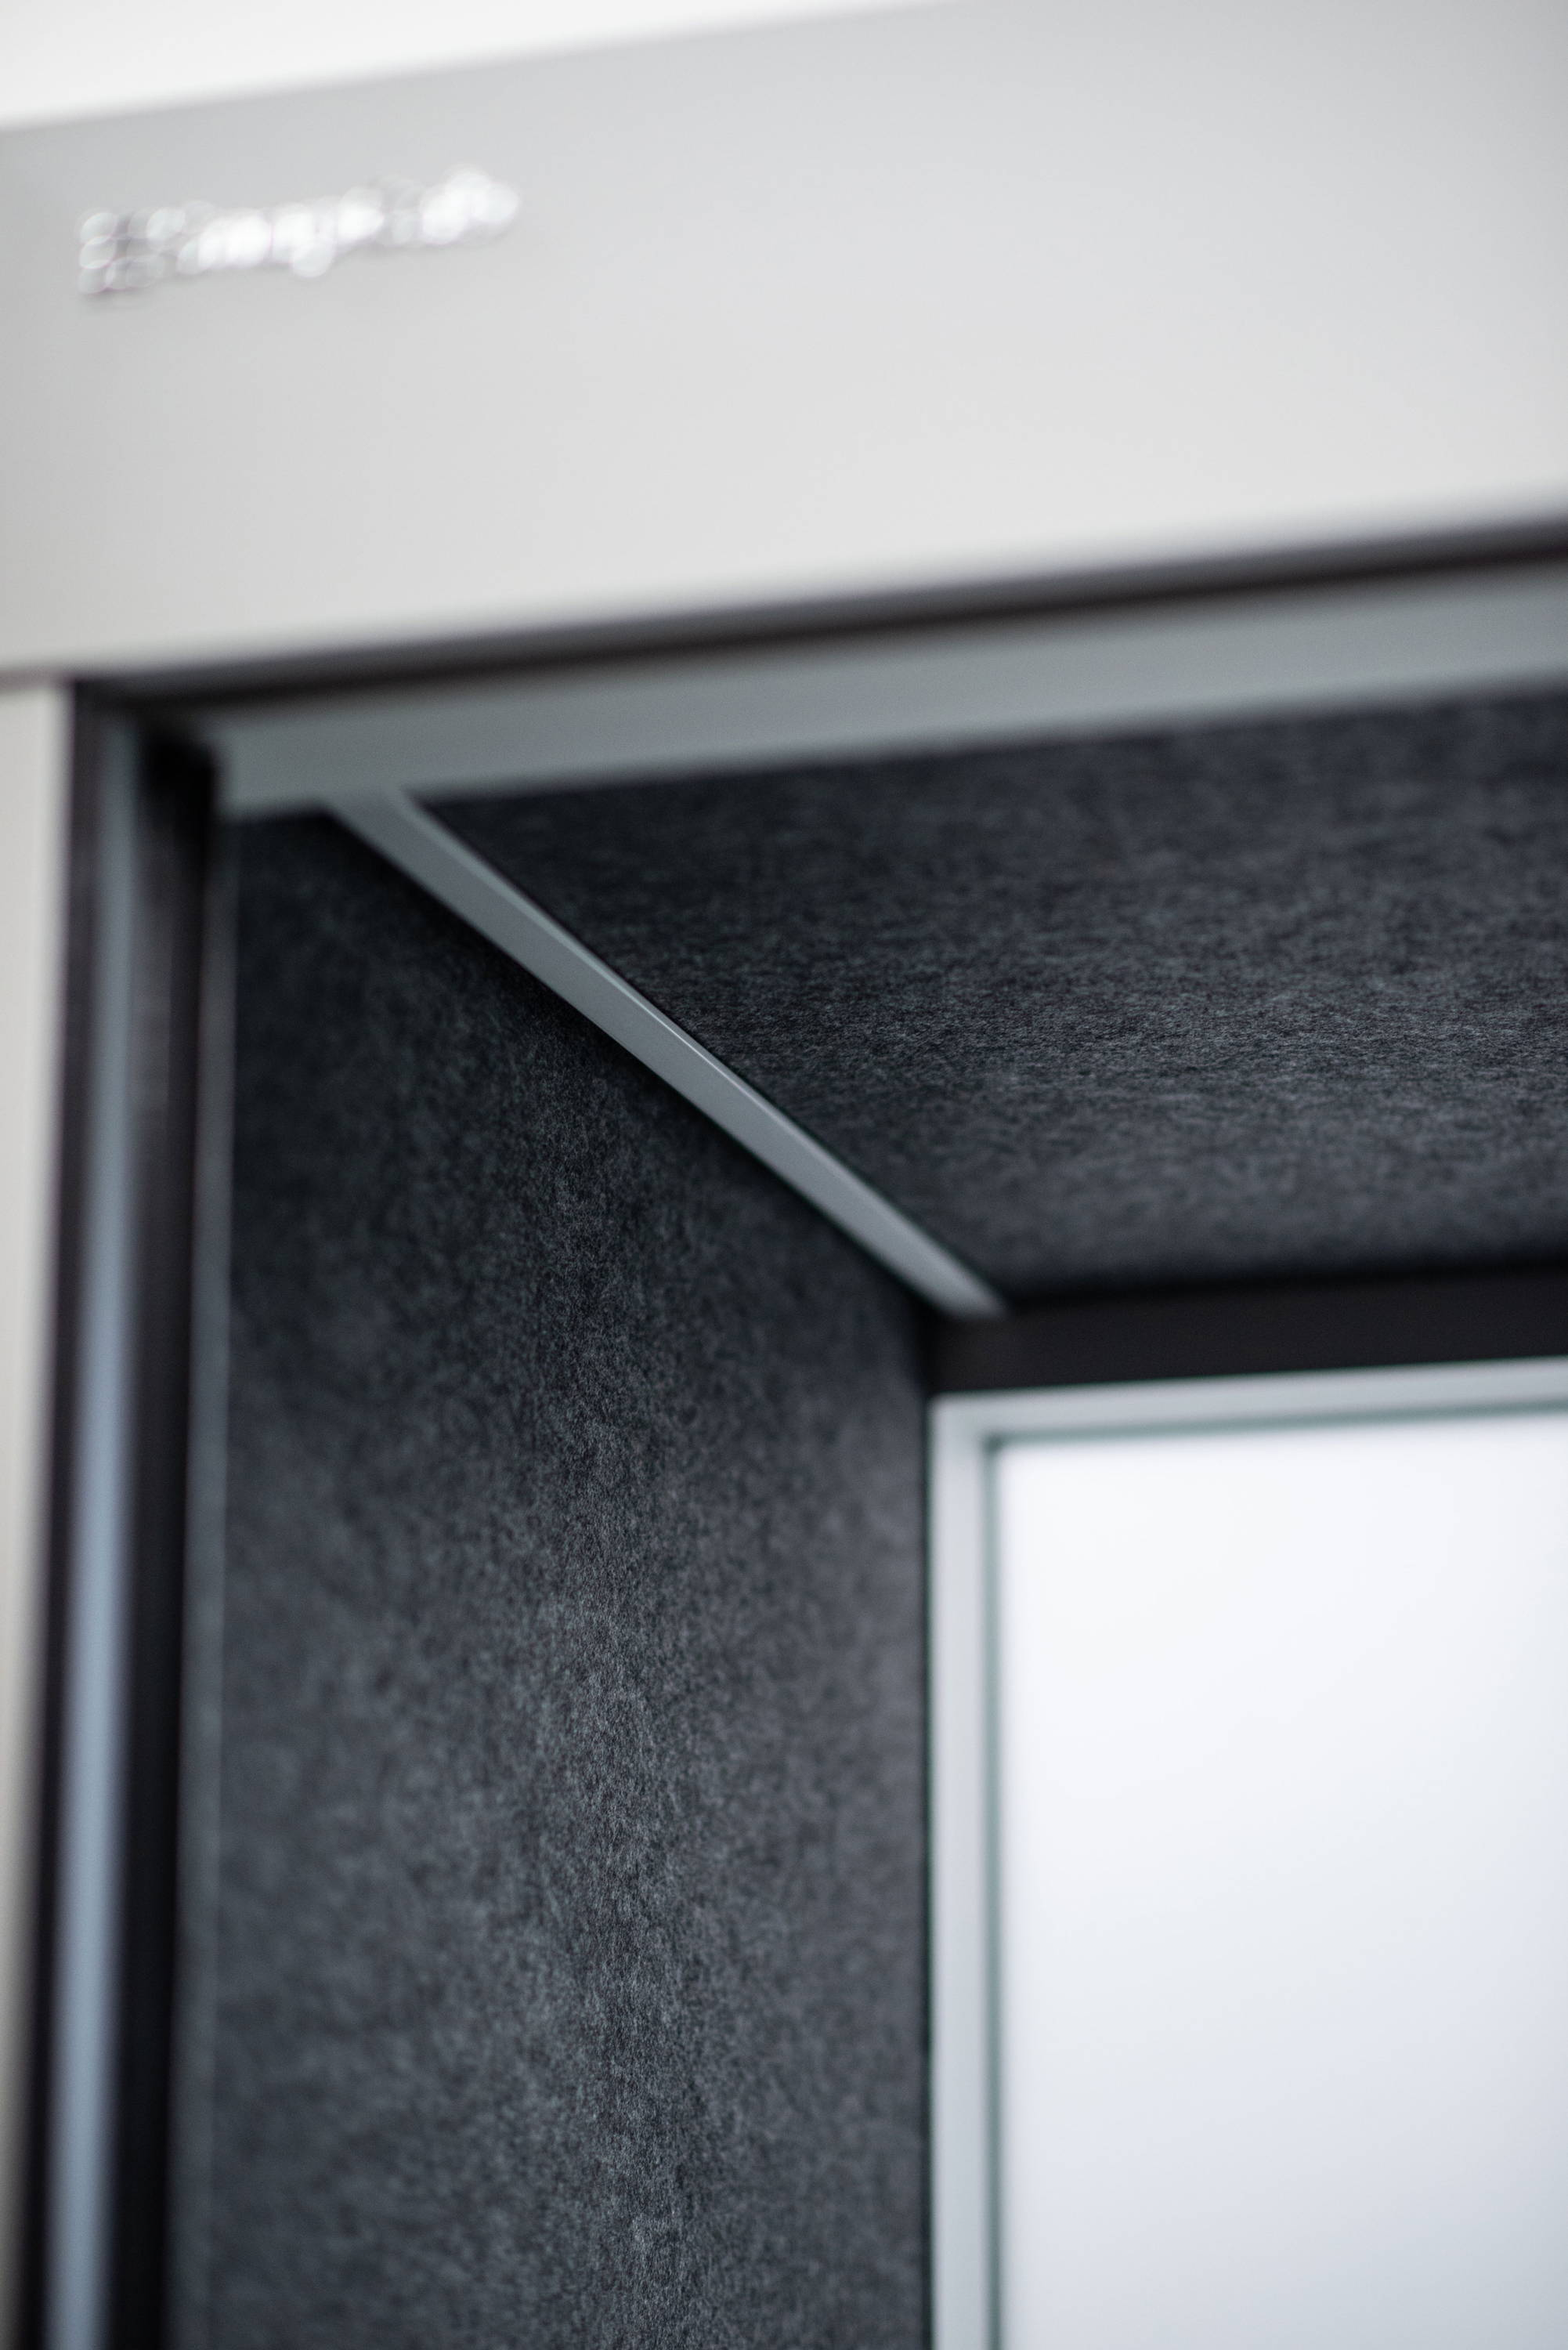 SnapCab PET sound dampening panels for coference and office pod